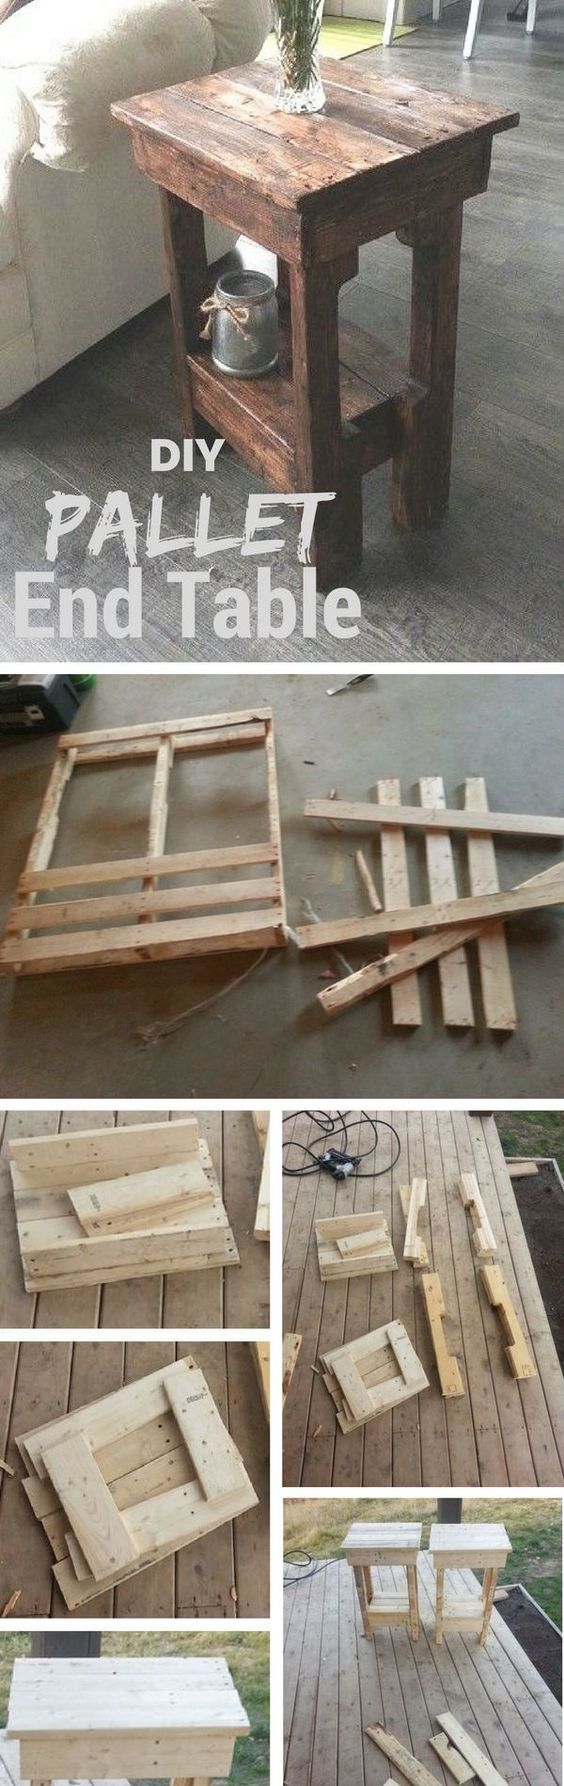 Easy DIY End Table from Wooden Shipping Pallets Tutorial | Instructables #easypalletprojects #beginnerwoodworking #easywoodworkingtutorials #woodworkingtutorials #DIYprojects #easyDIYprojects #diyhomedecor #diyfurniture